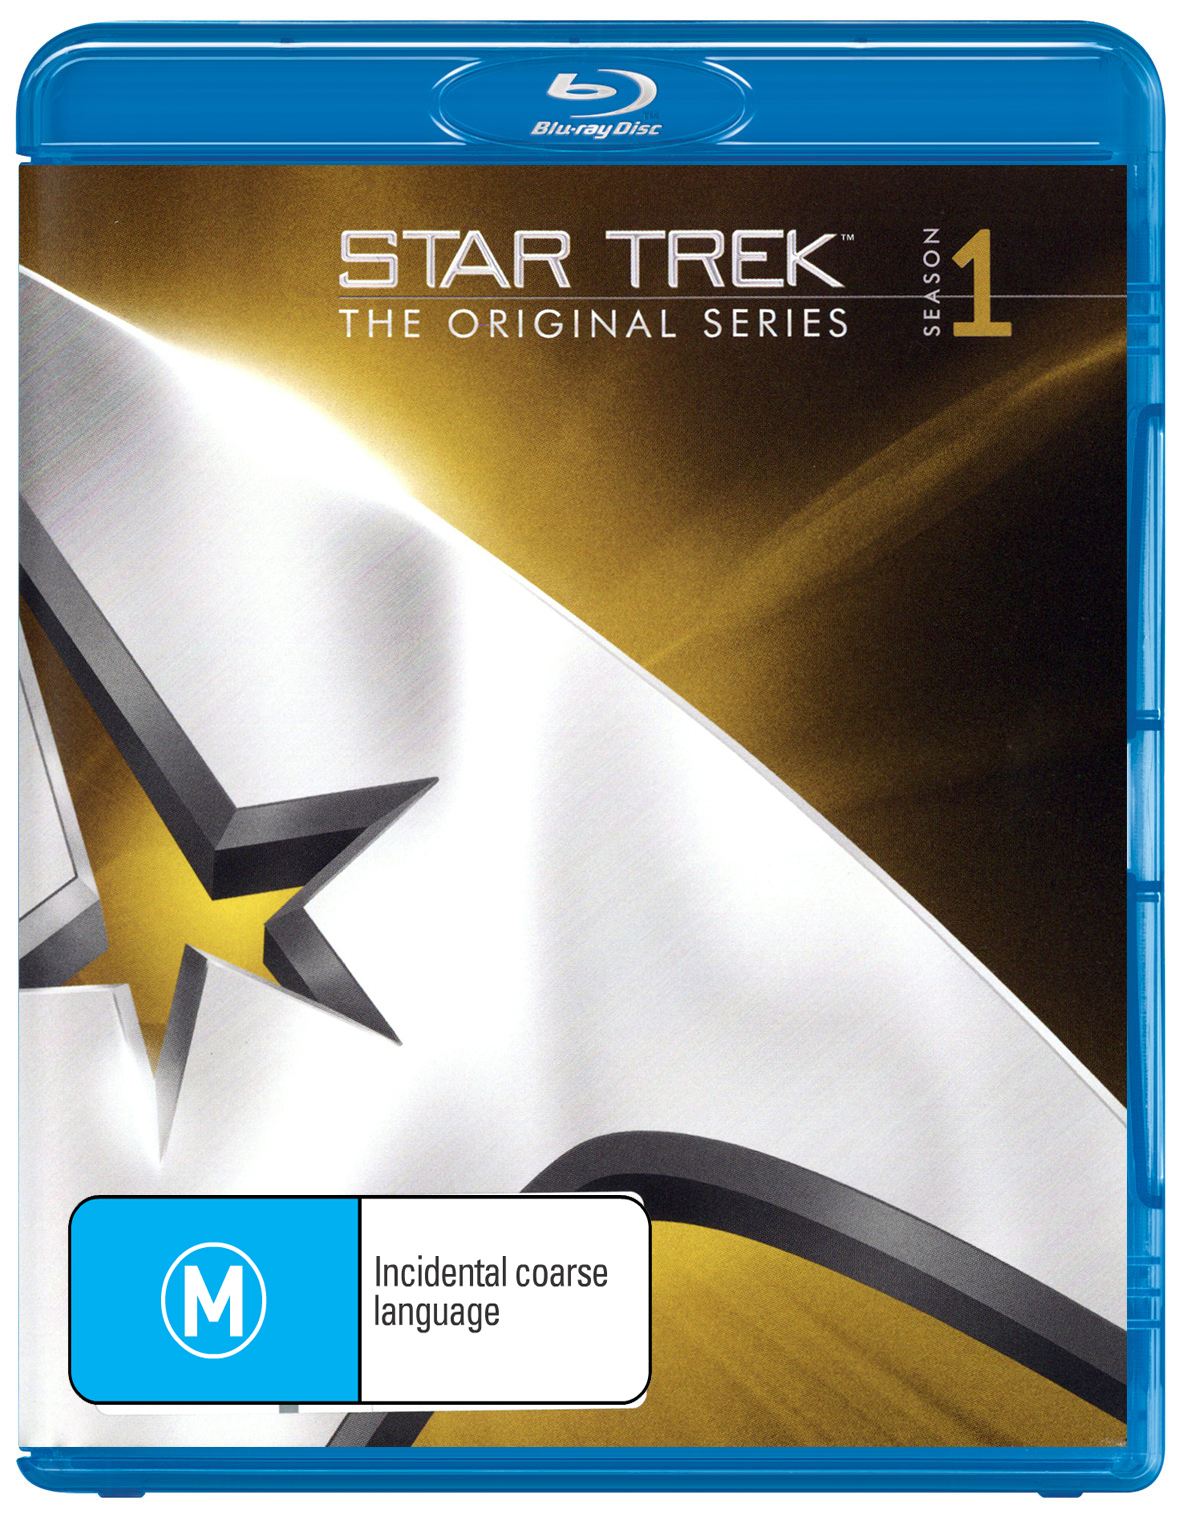 Star Trek The Original Series - The Complete First Season Remastered on Blu-ray image